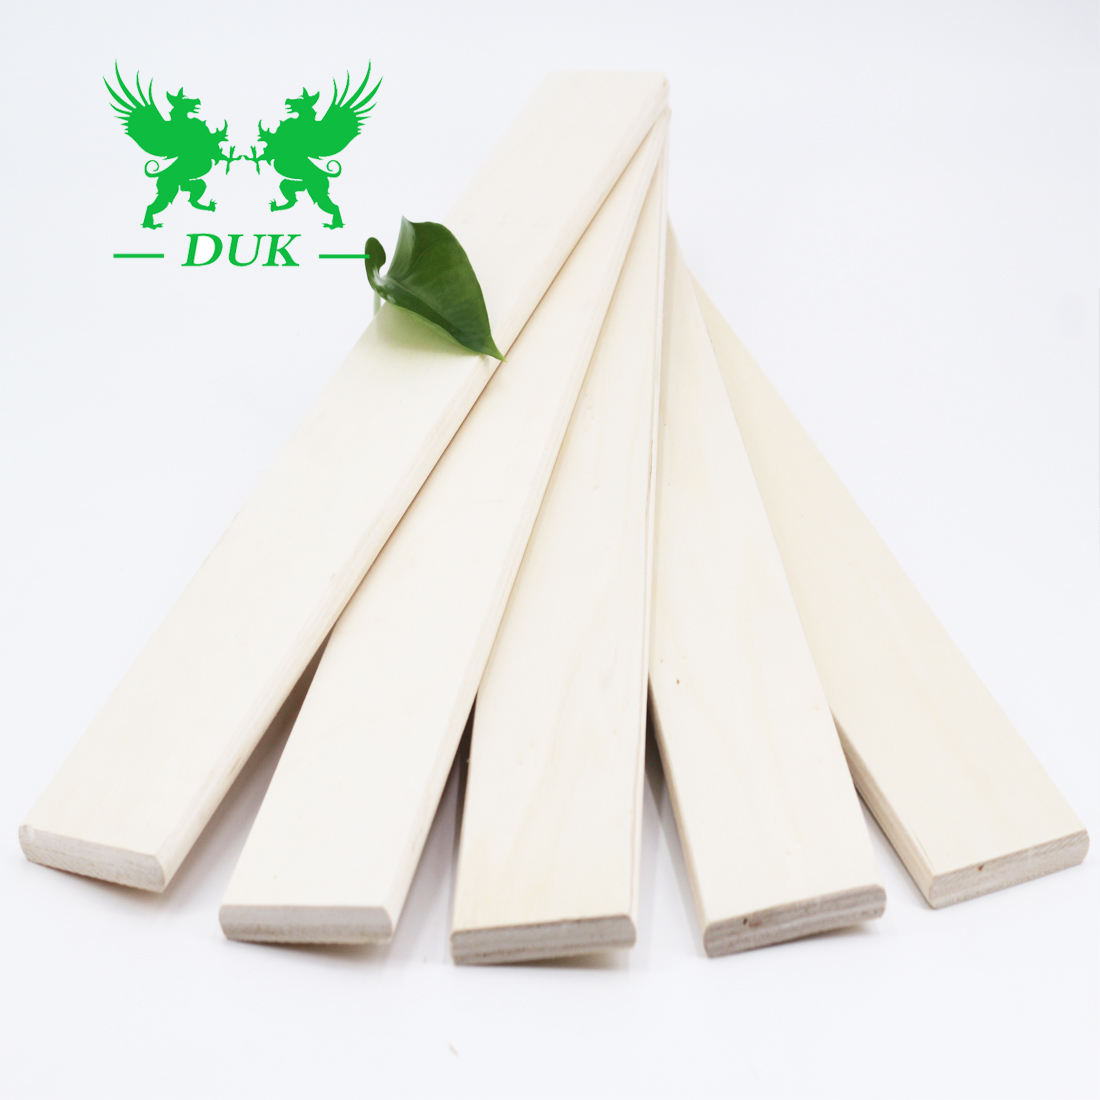 Best Price E0 Glue Wooden Bed Parts Poplar LVL Slats for Bed